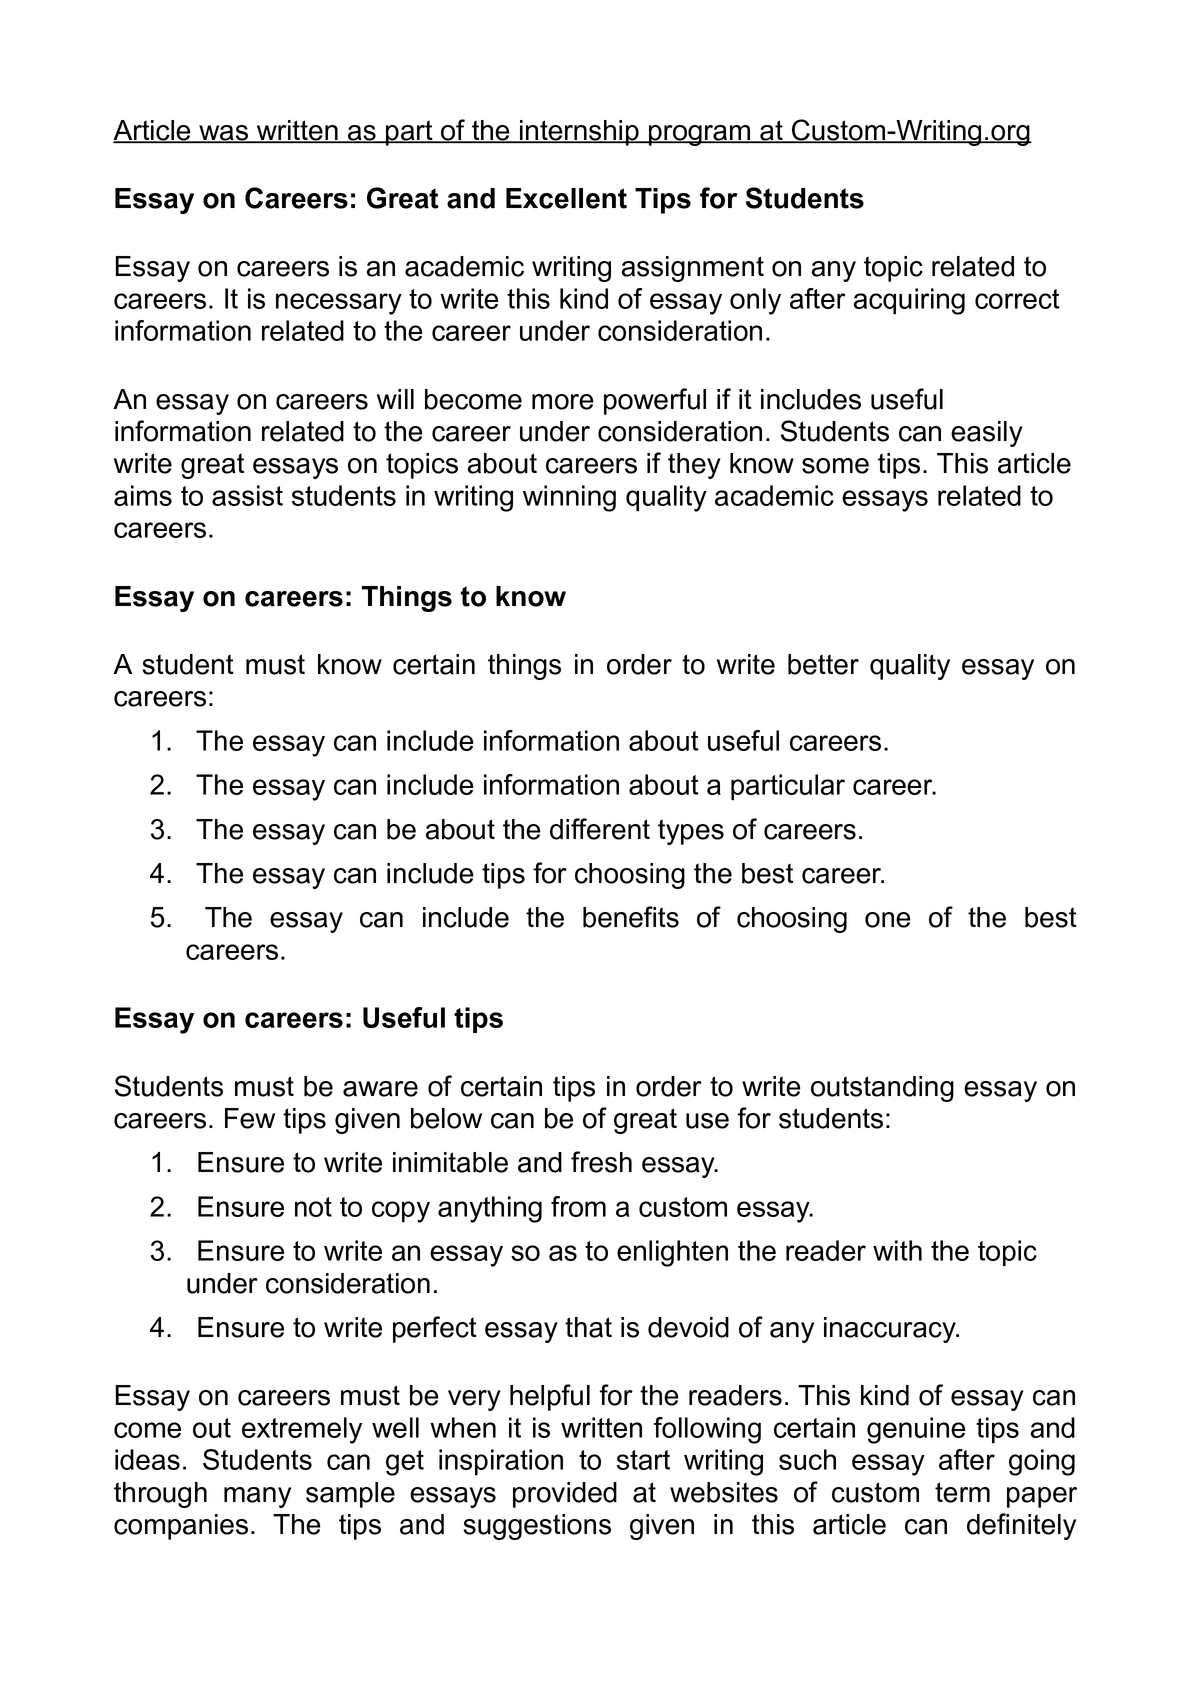 Personal Essay Examples For High School  Essay Proposal Outline also Essay About Learning English Language Calamo  Essay On Careers Great And Excellent Tips For Students English As A Second Language Essay